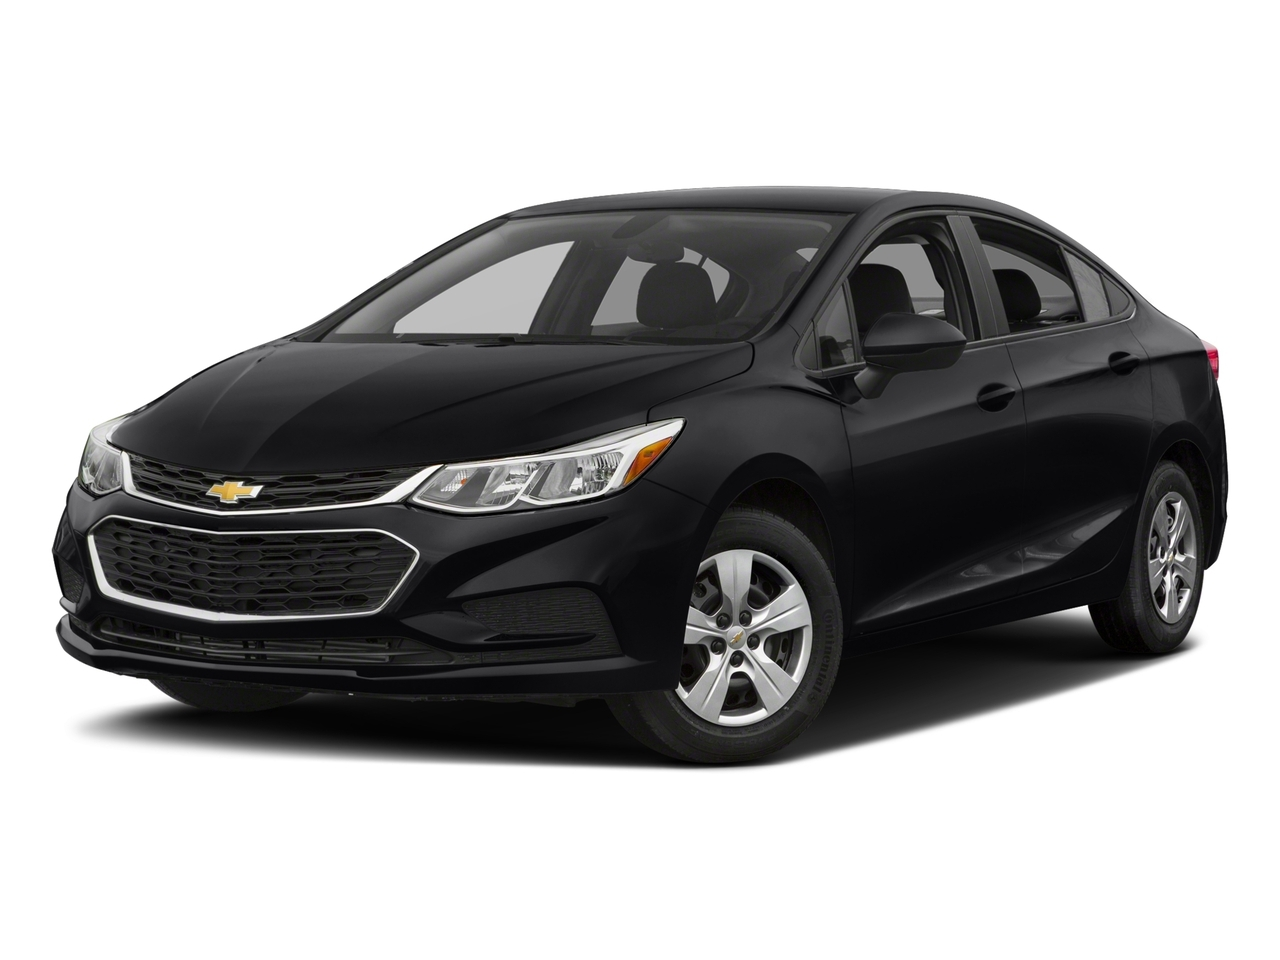 Buyer's Guide: 2019 Chevrolet Cruze